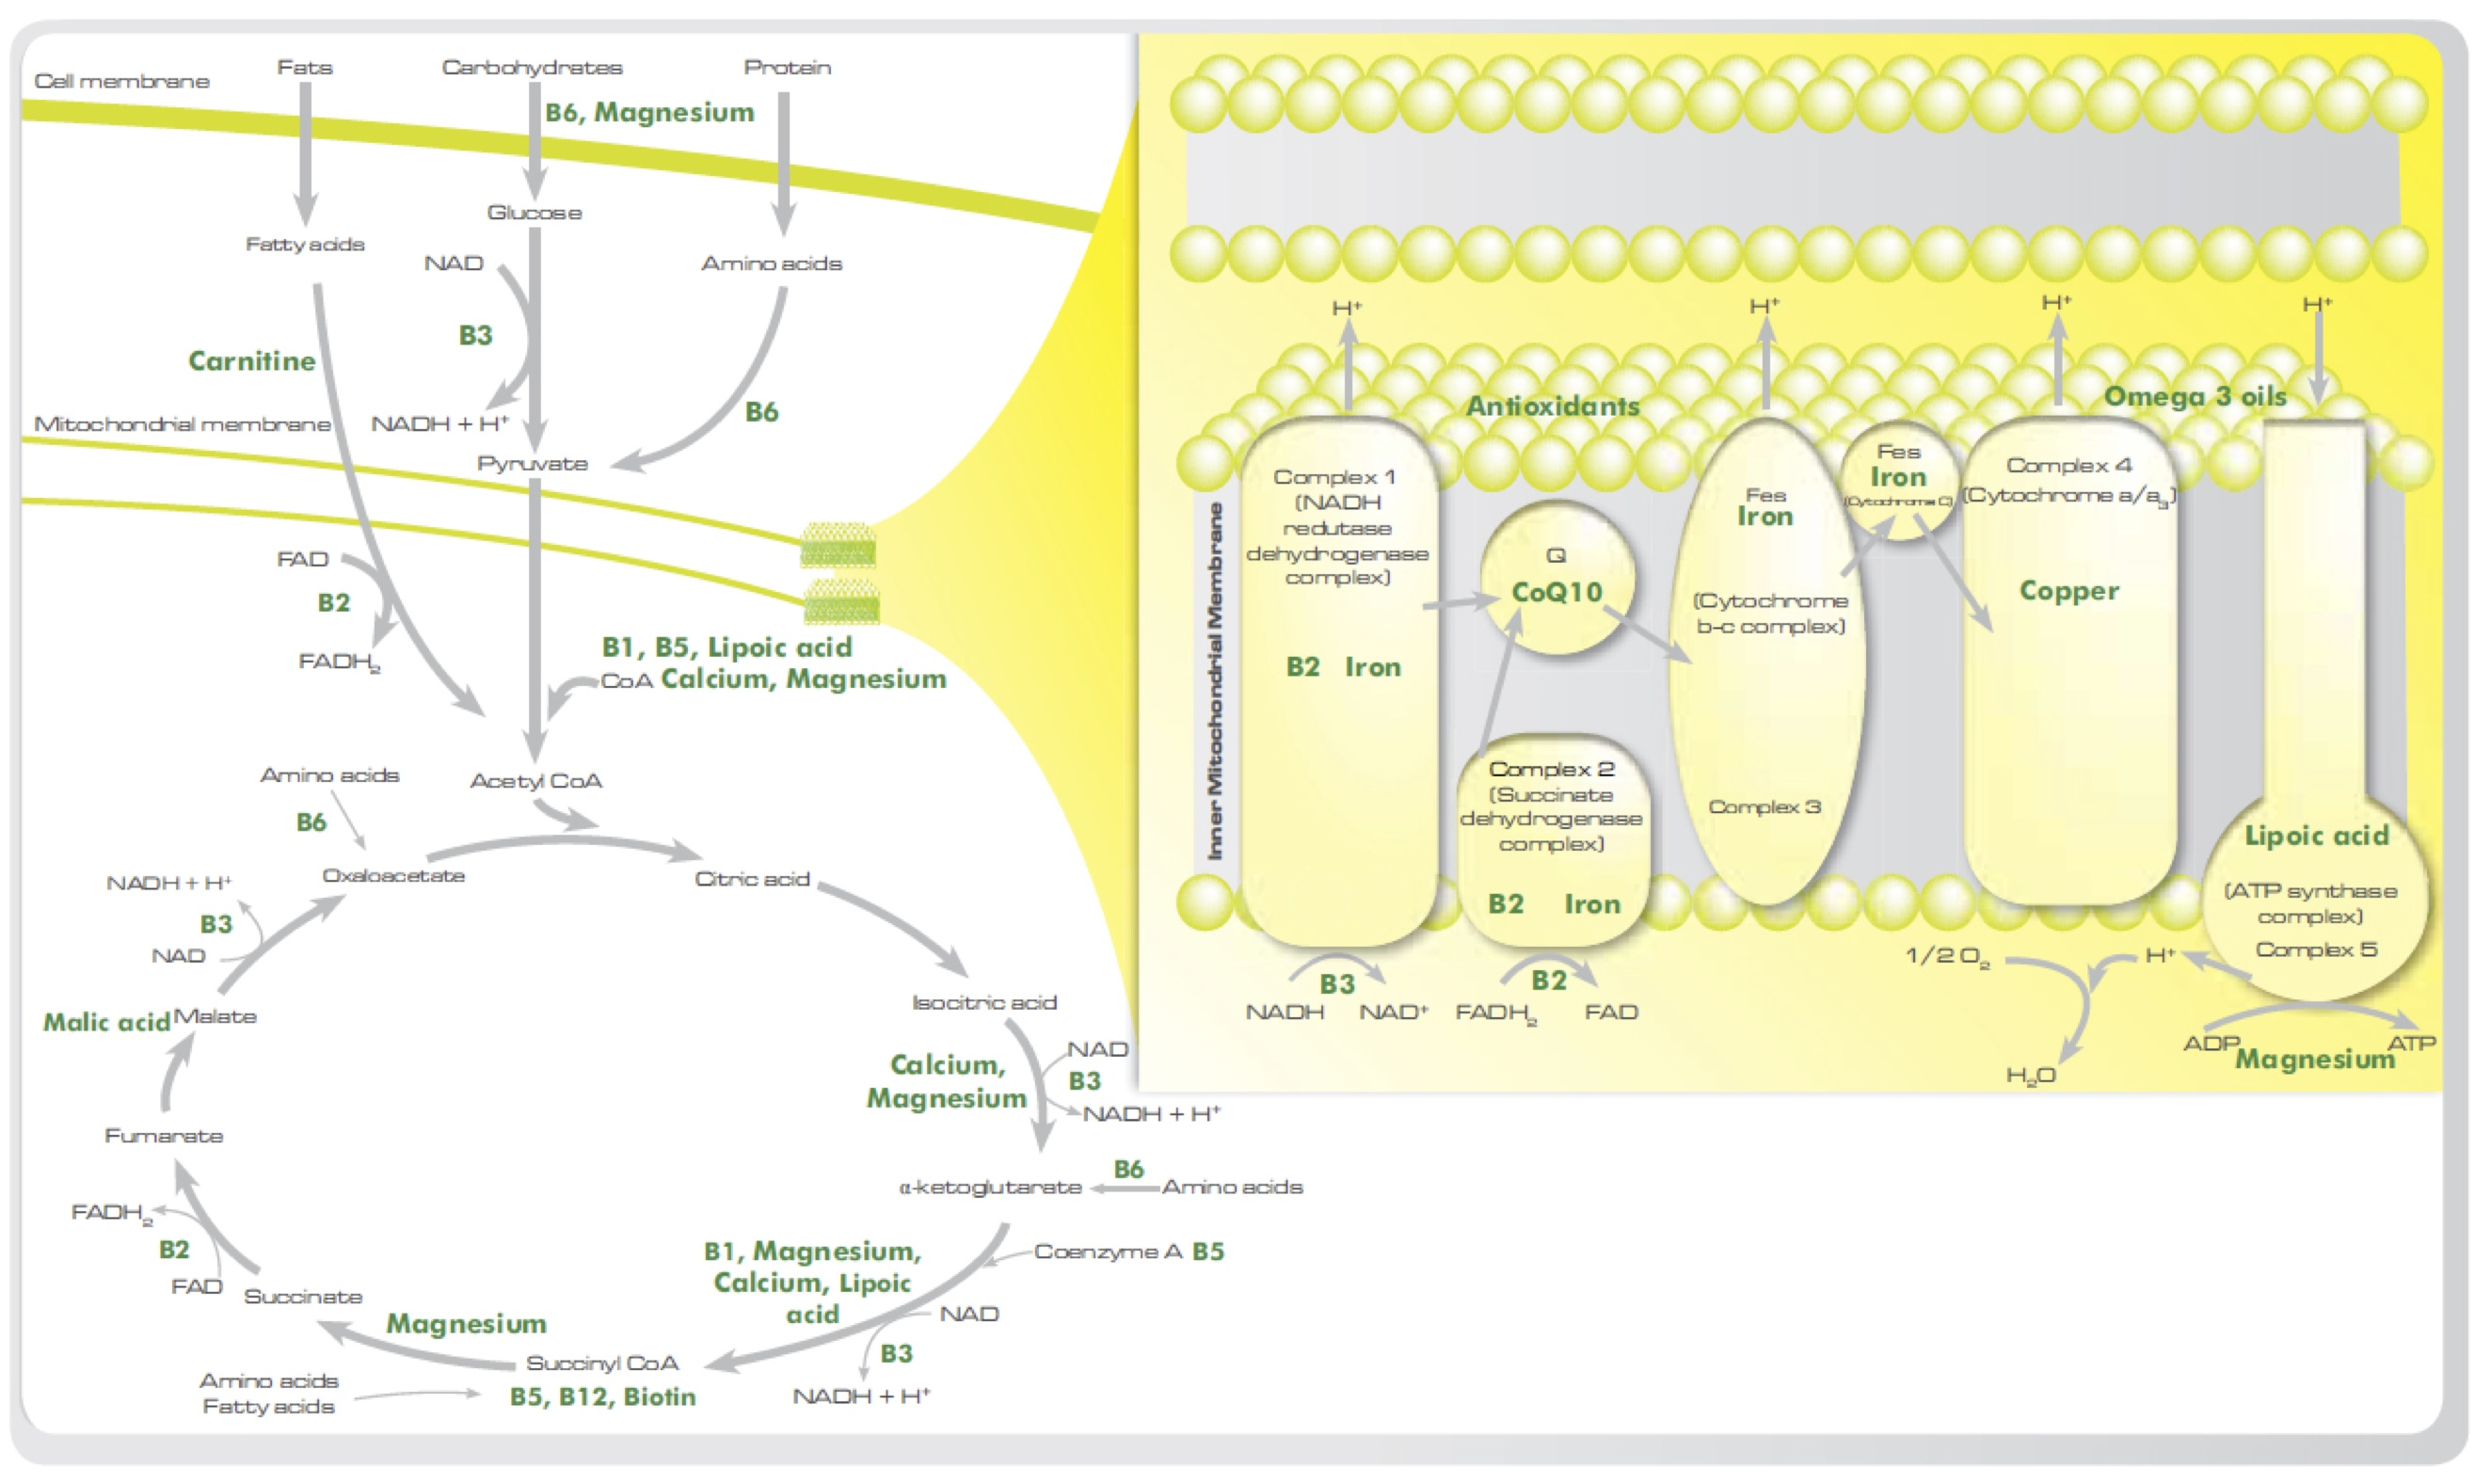 What is the cause of fatigue and why are you so tired krebs cycle diagram pooptronica Image collections